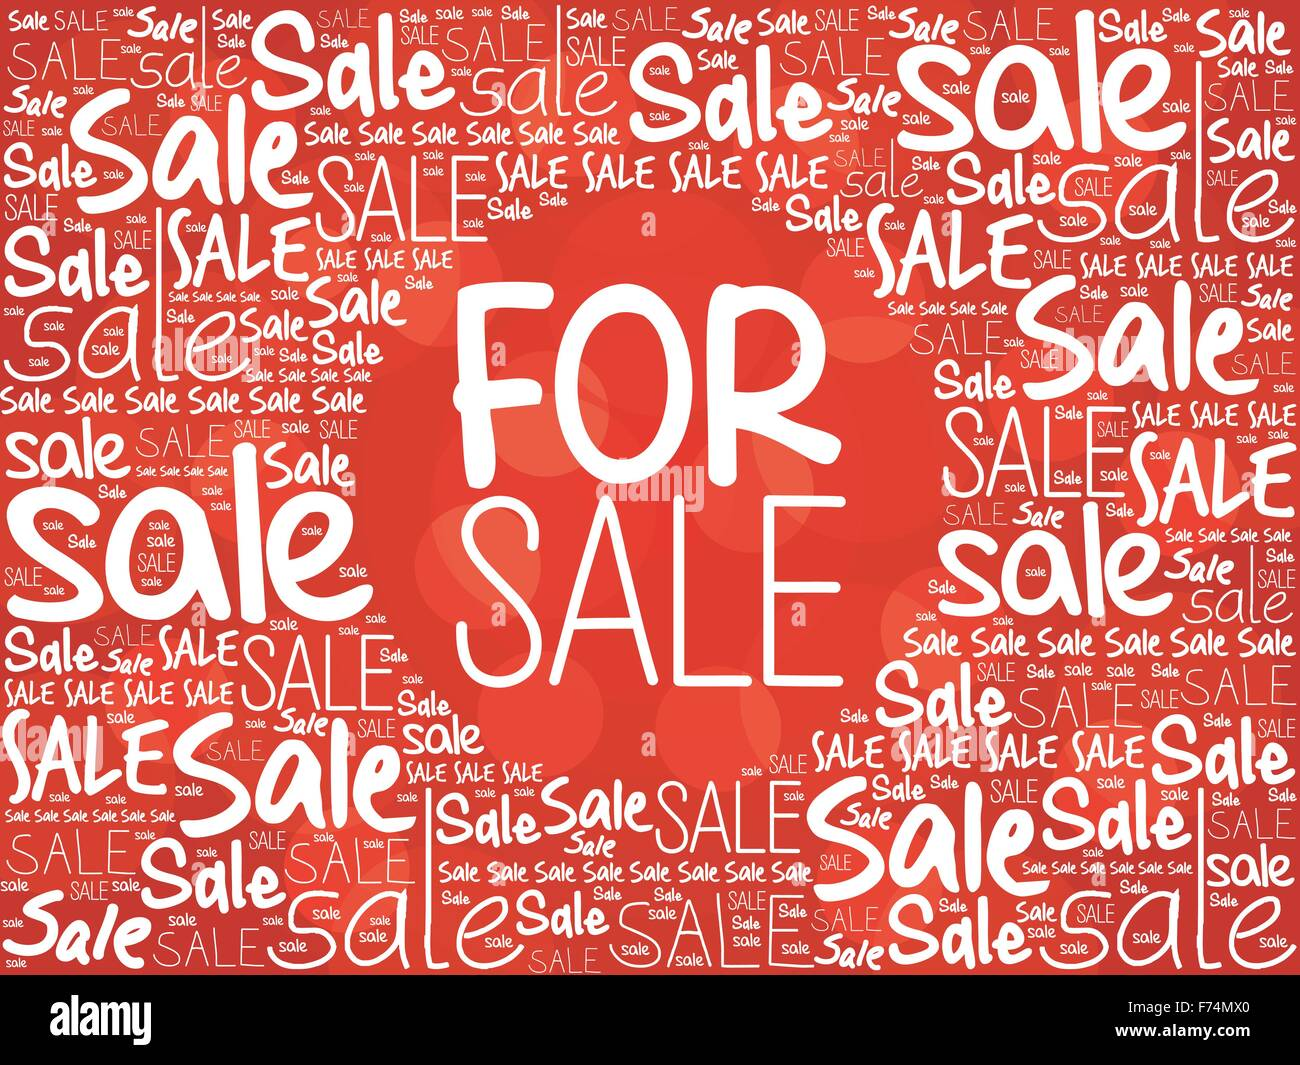 FOR SALE word cloud background, business concept - Stock Image